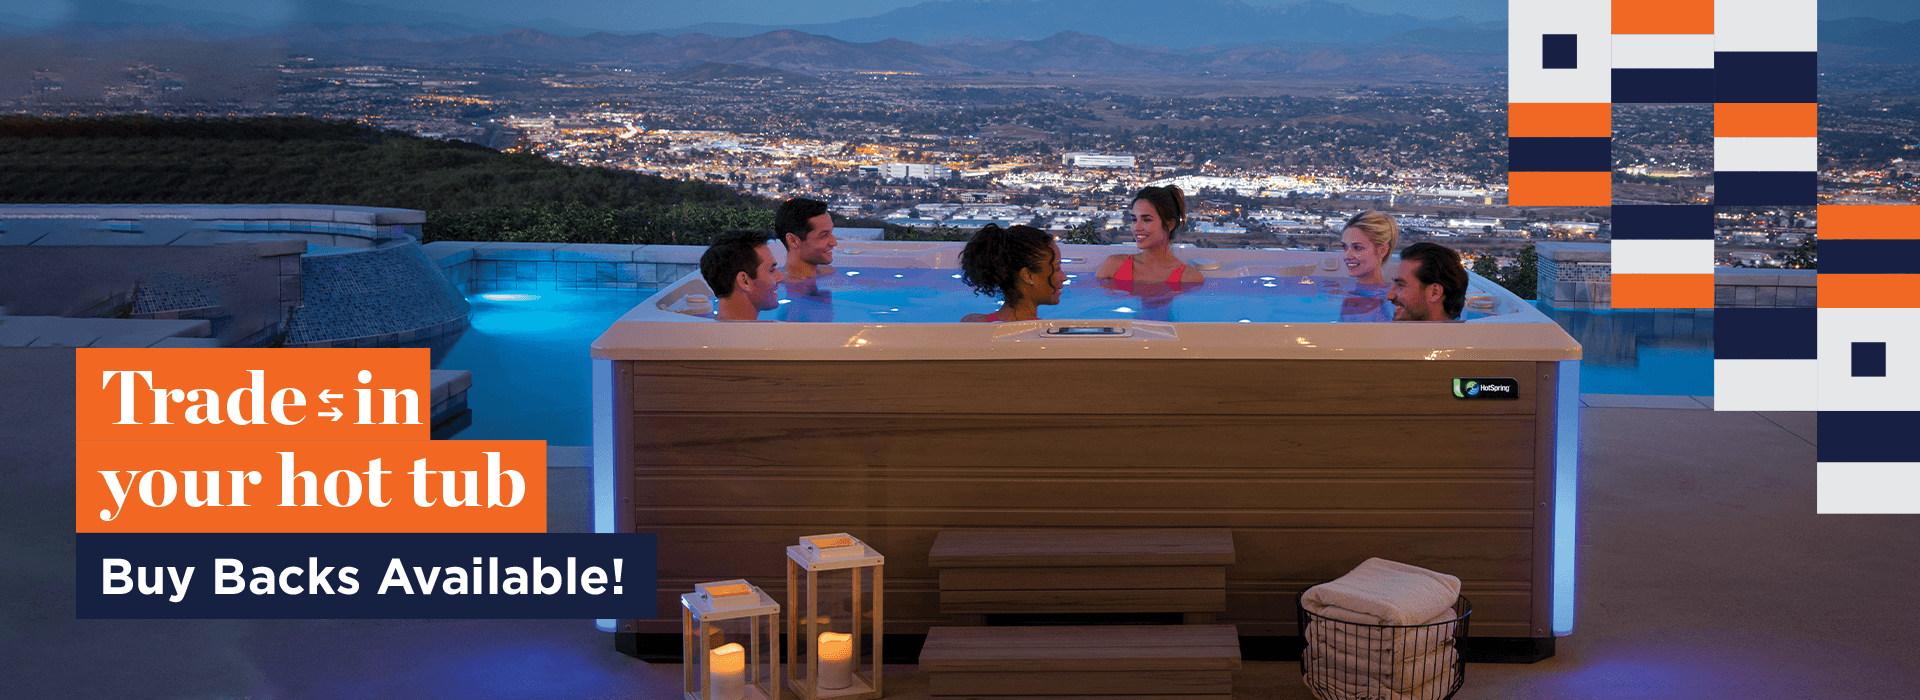 Fall Trade in your hot tub sale